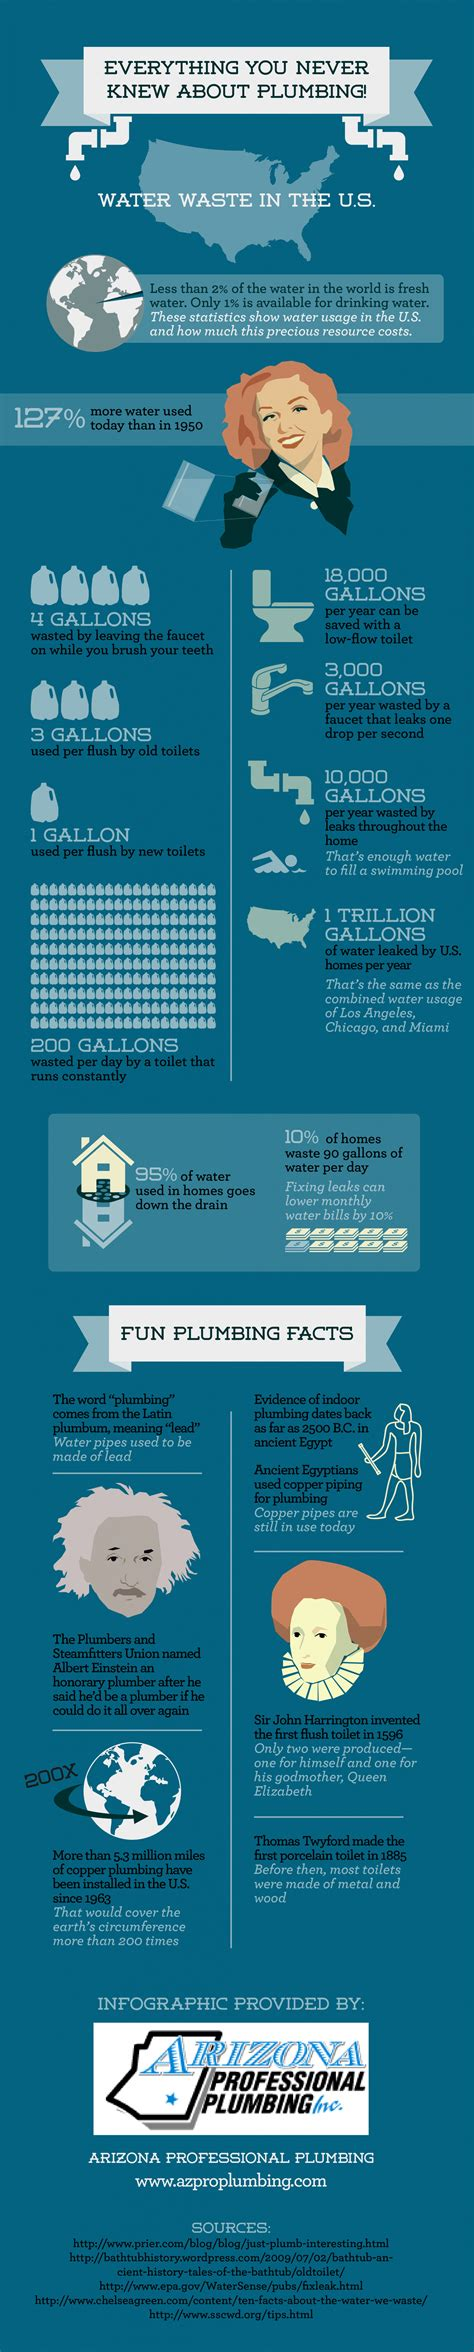 Plumbing Company Slogans by Everything You Never Knew About Plumbing Infographic